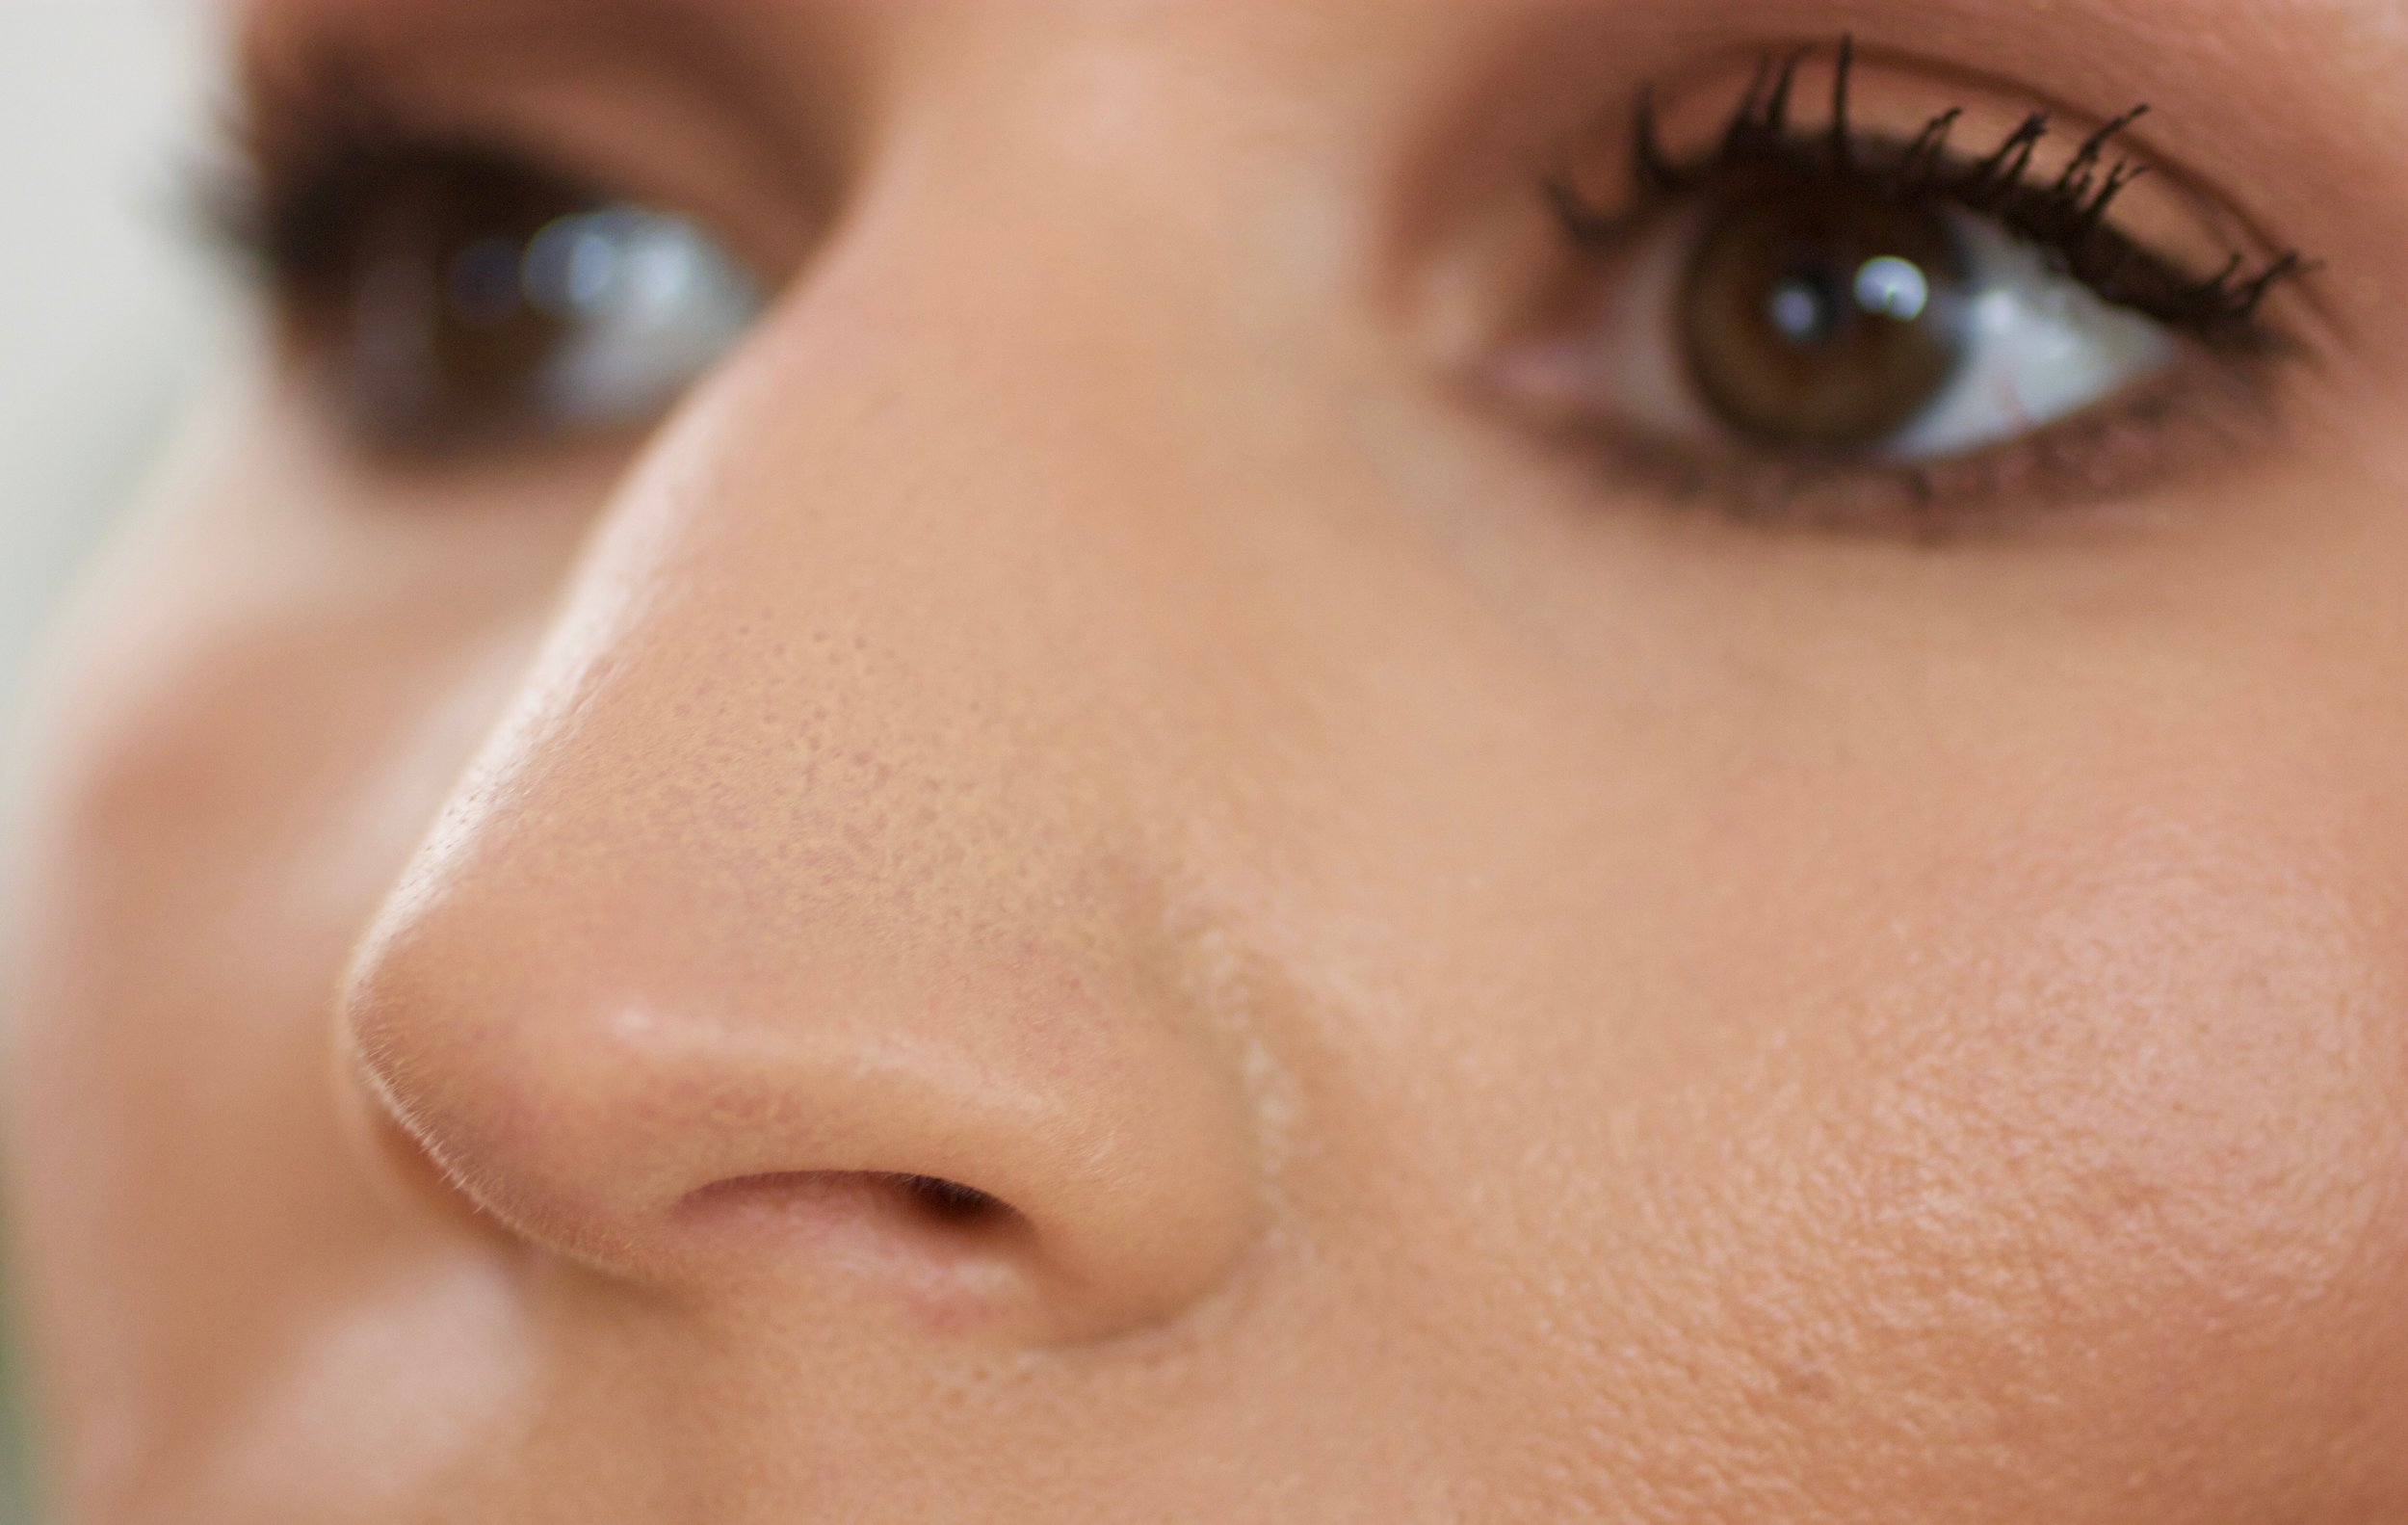 starts settling into pores in nose area within the first hour of wear